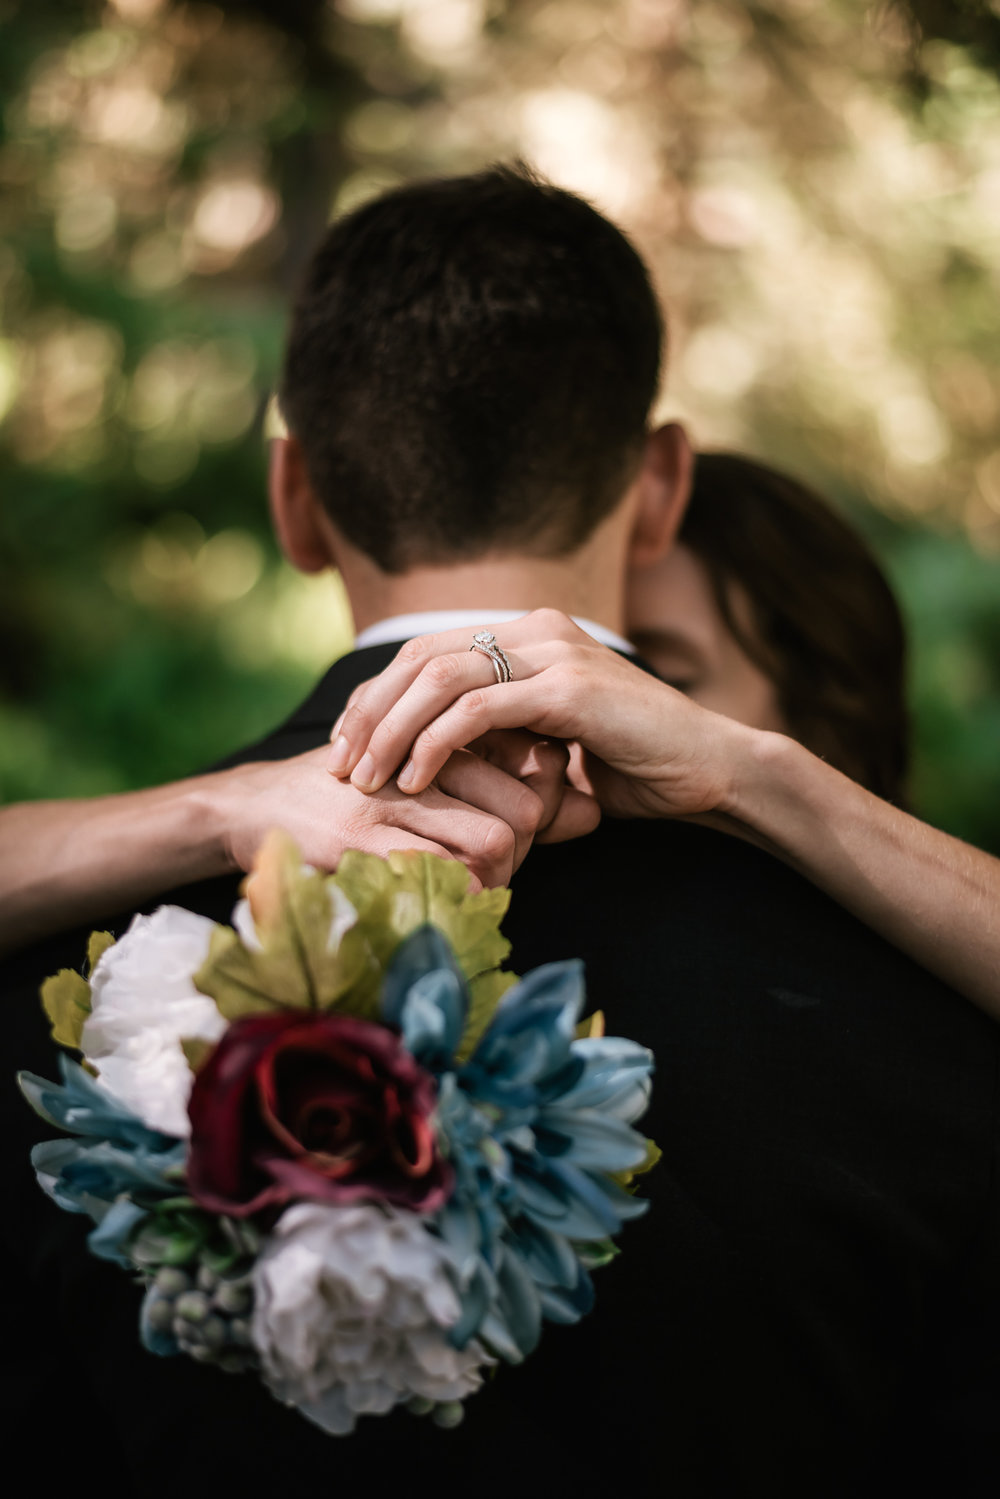 Bride wraps her arms around her husband and shows off her engagement ring and bouquet.